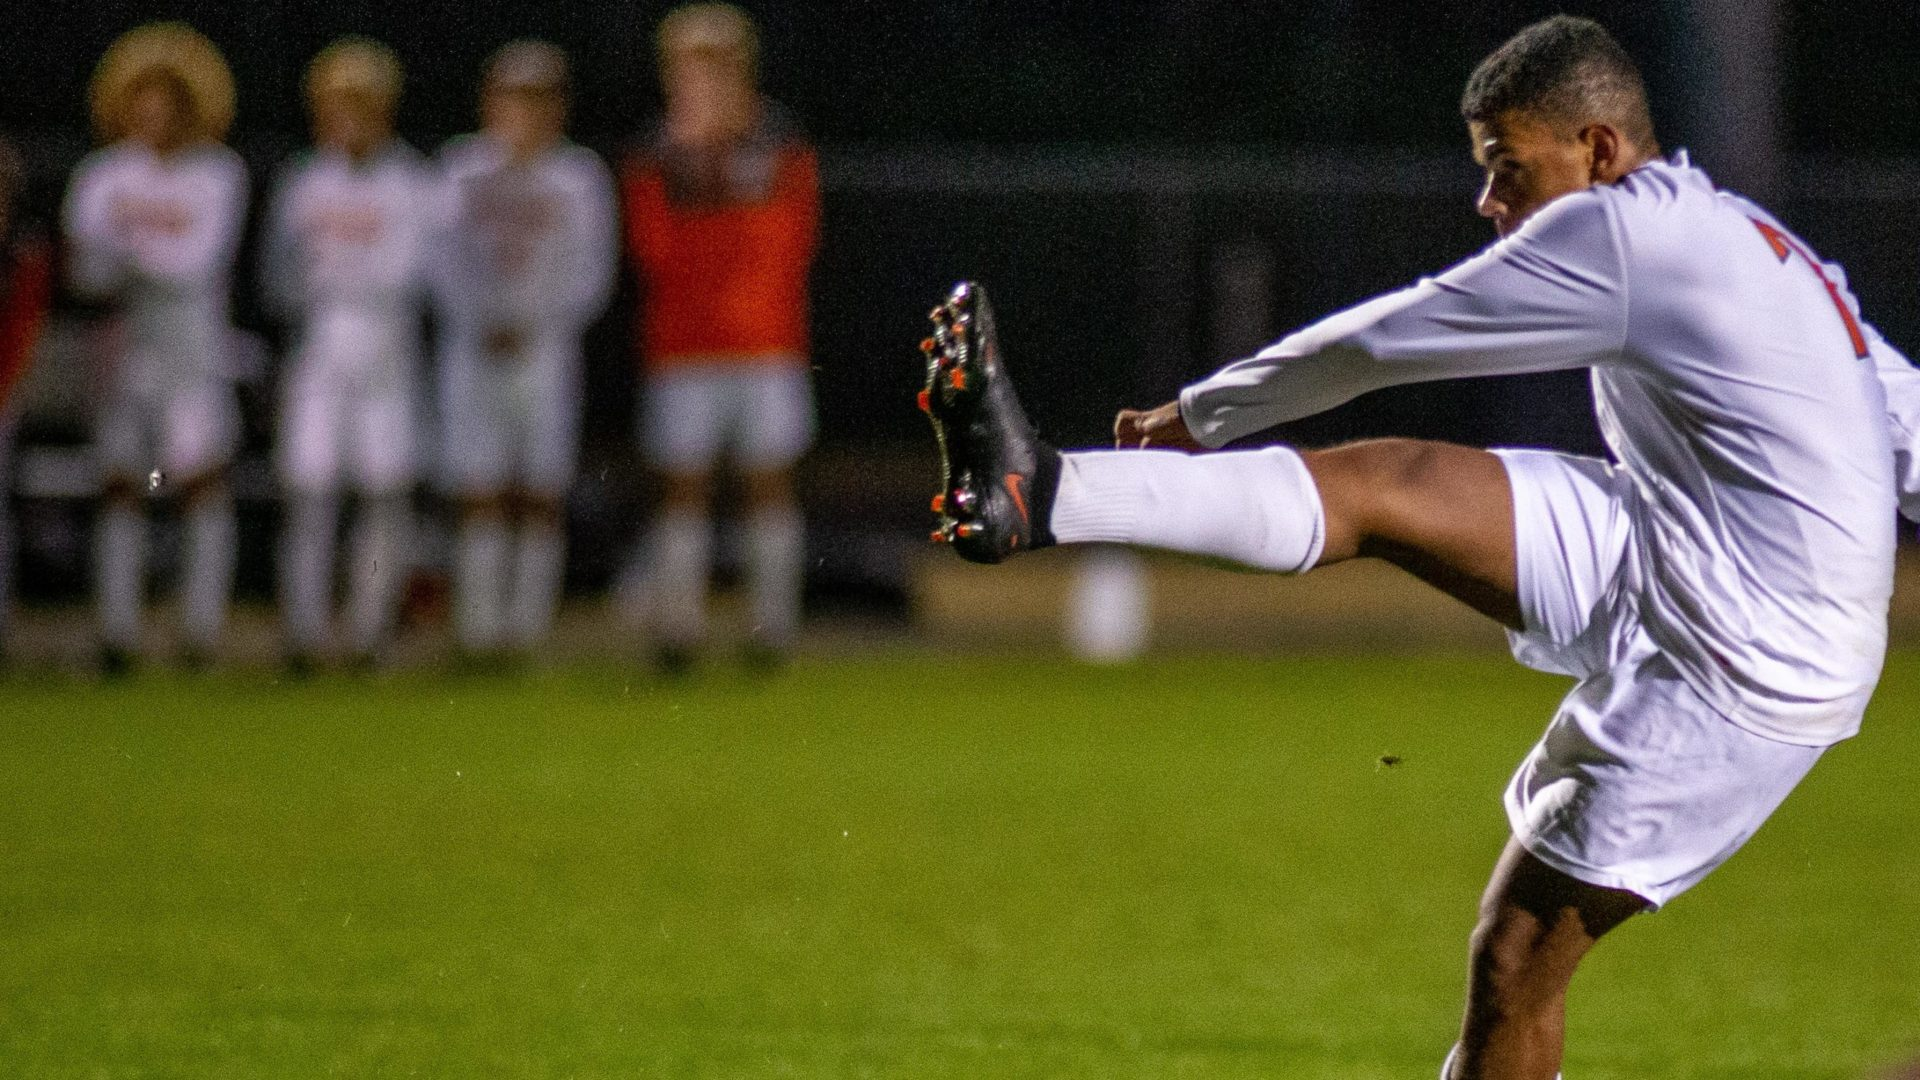 FHSAA final regular season boys soccer rankings